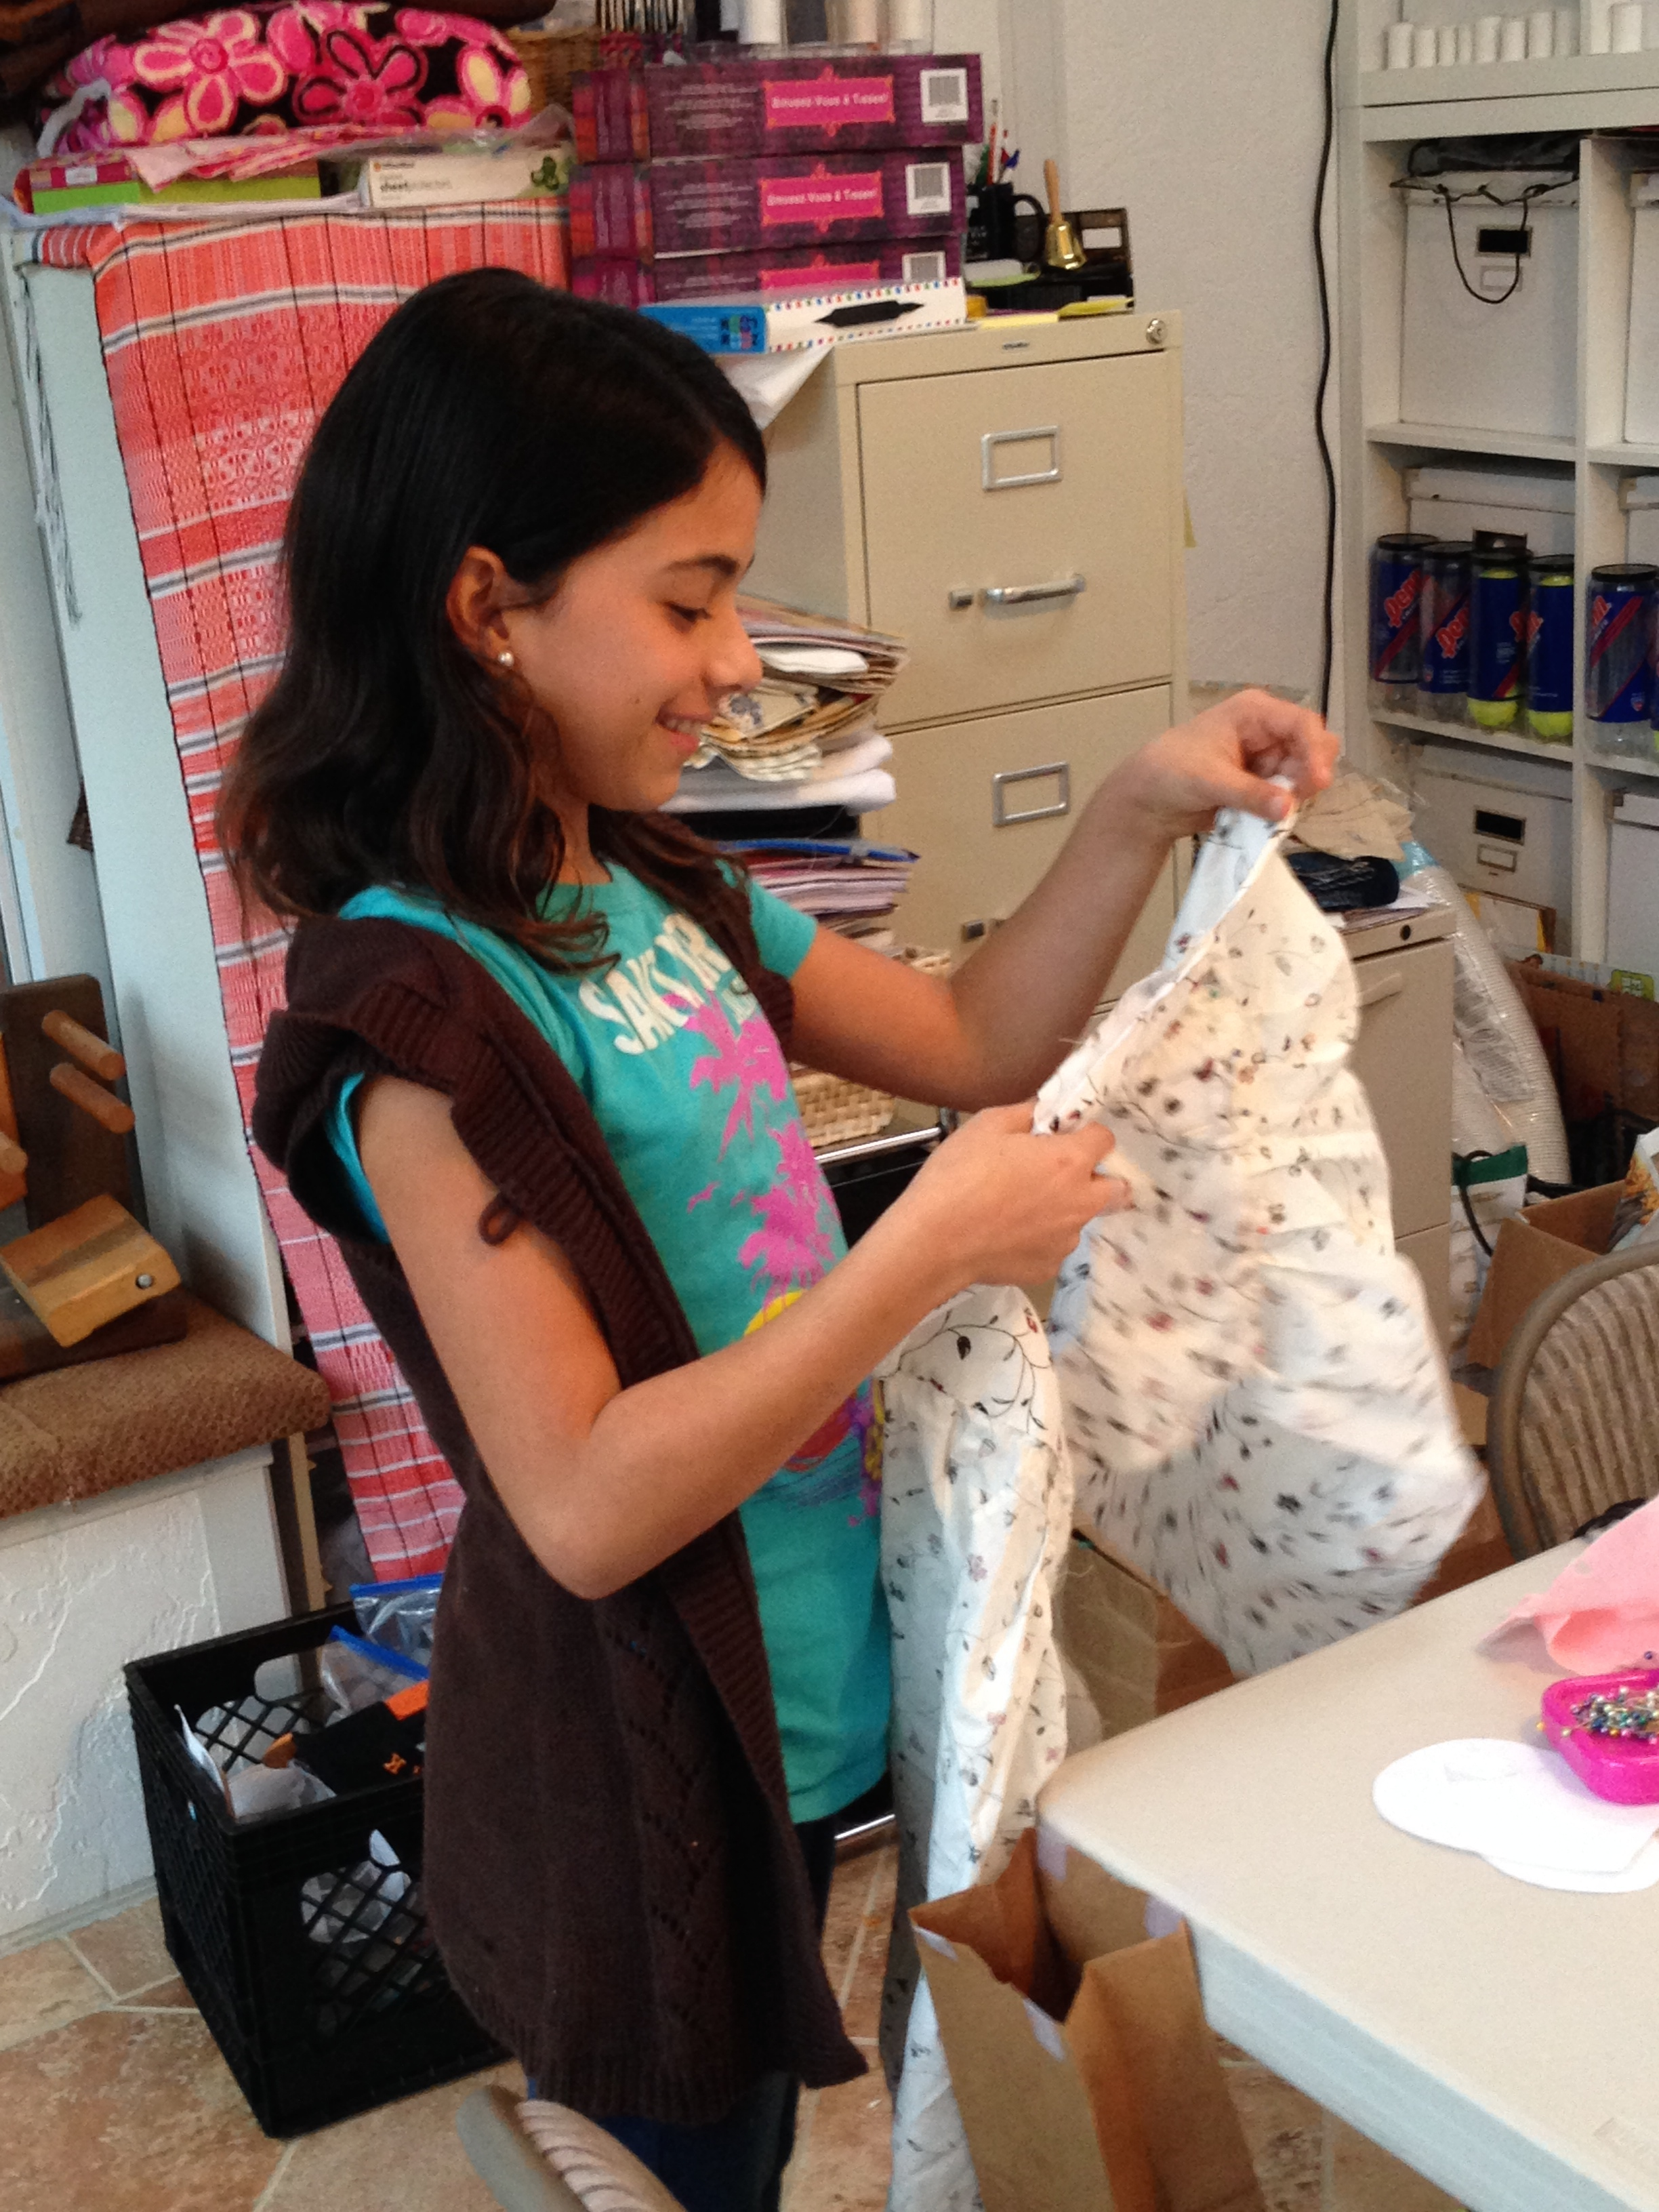 4th grader working on her shirt.